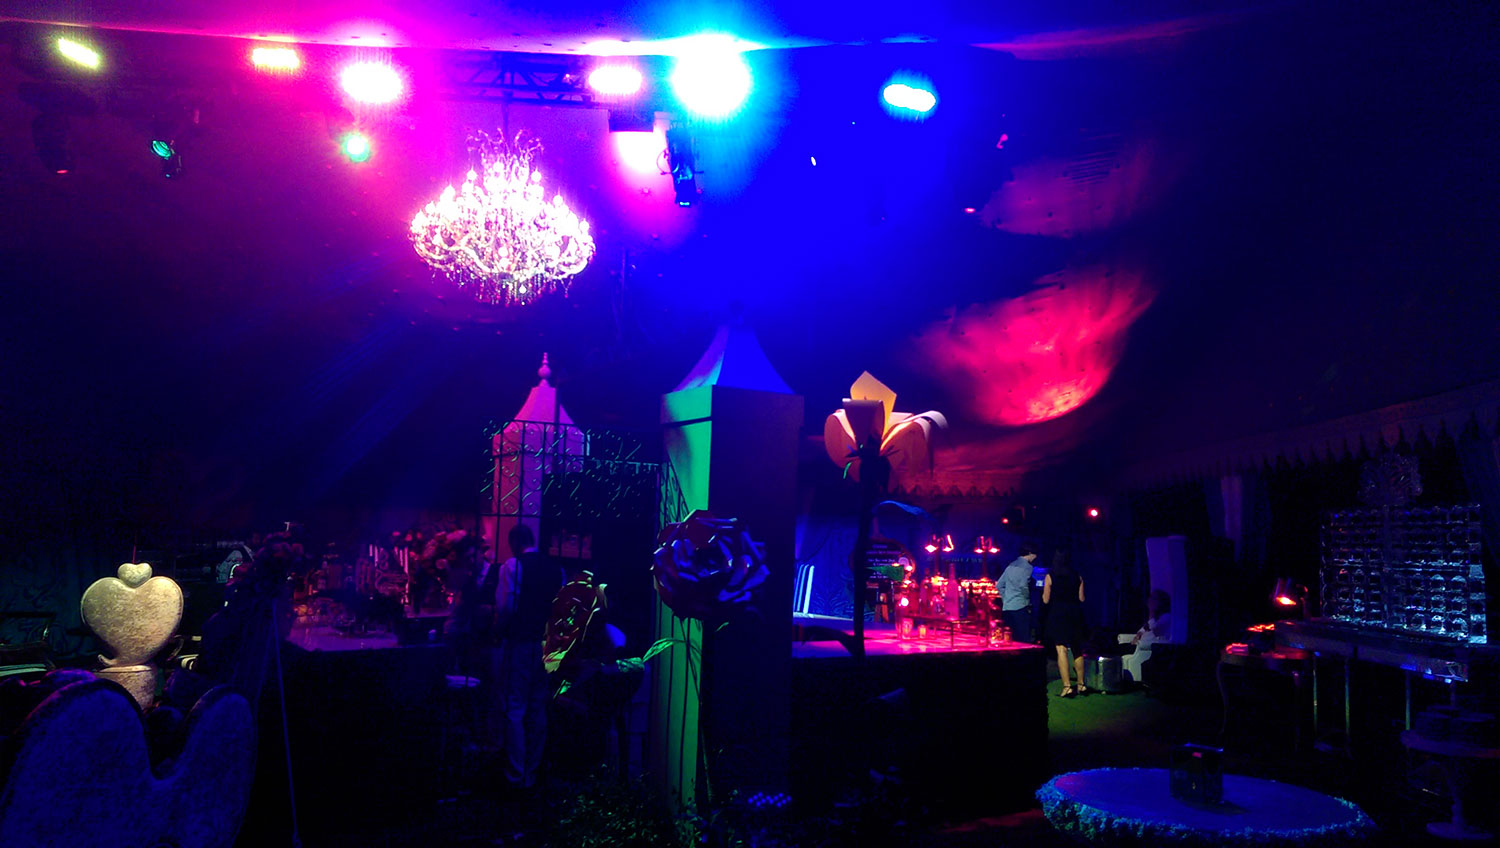 raj-tents-corporate-events-engage-party.jpg